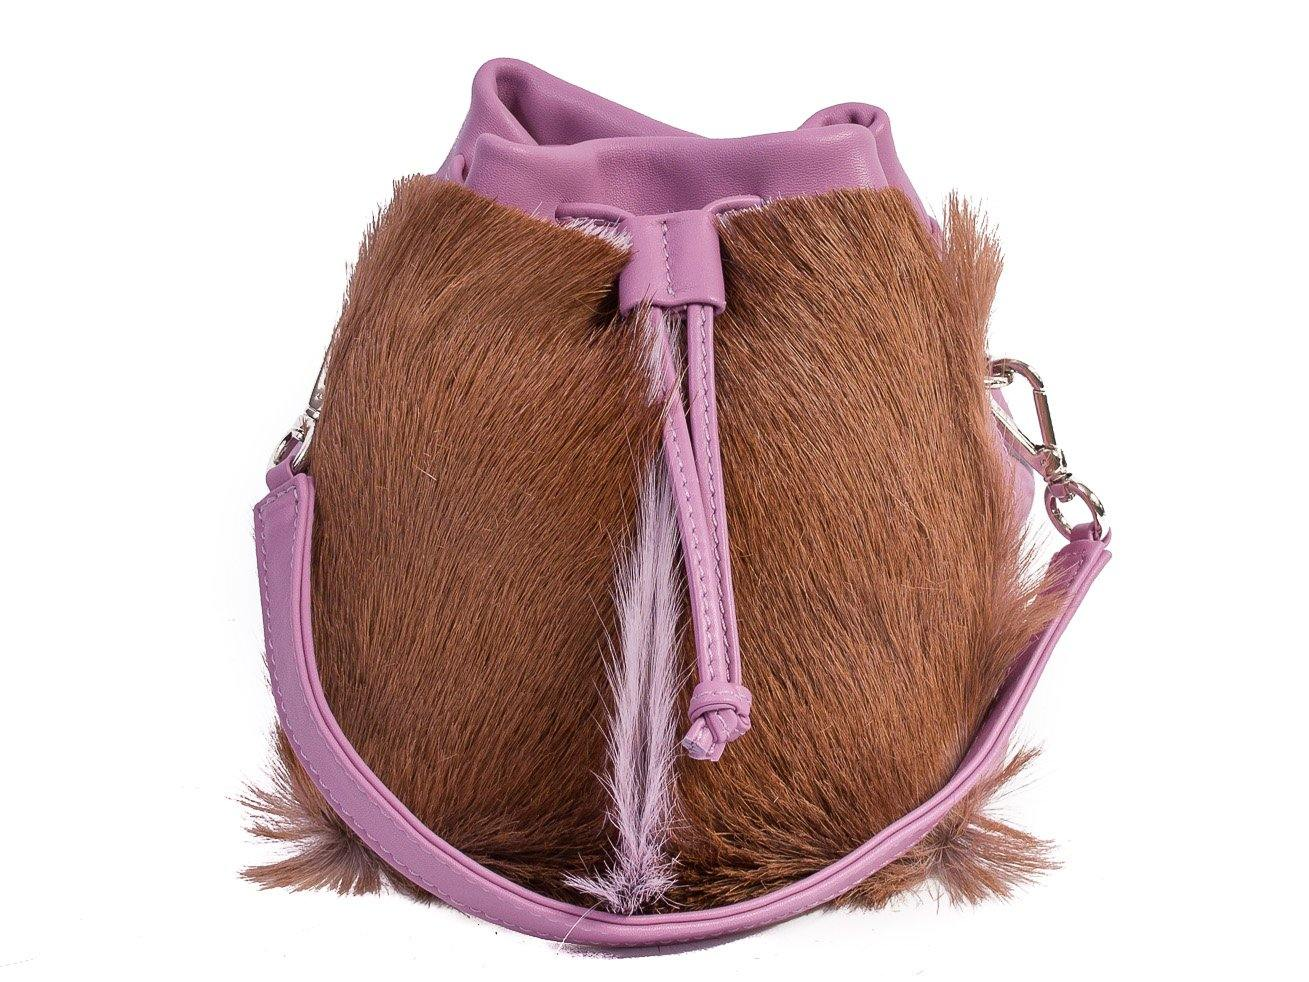 sherene melinda springbok hair-on-hide lavender leather pouch bag fan front strap